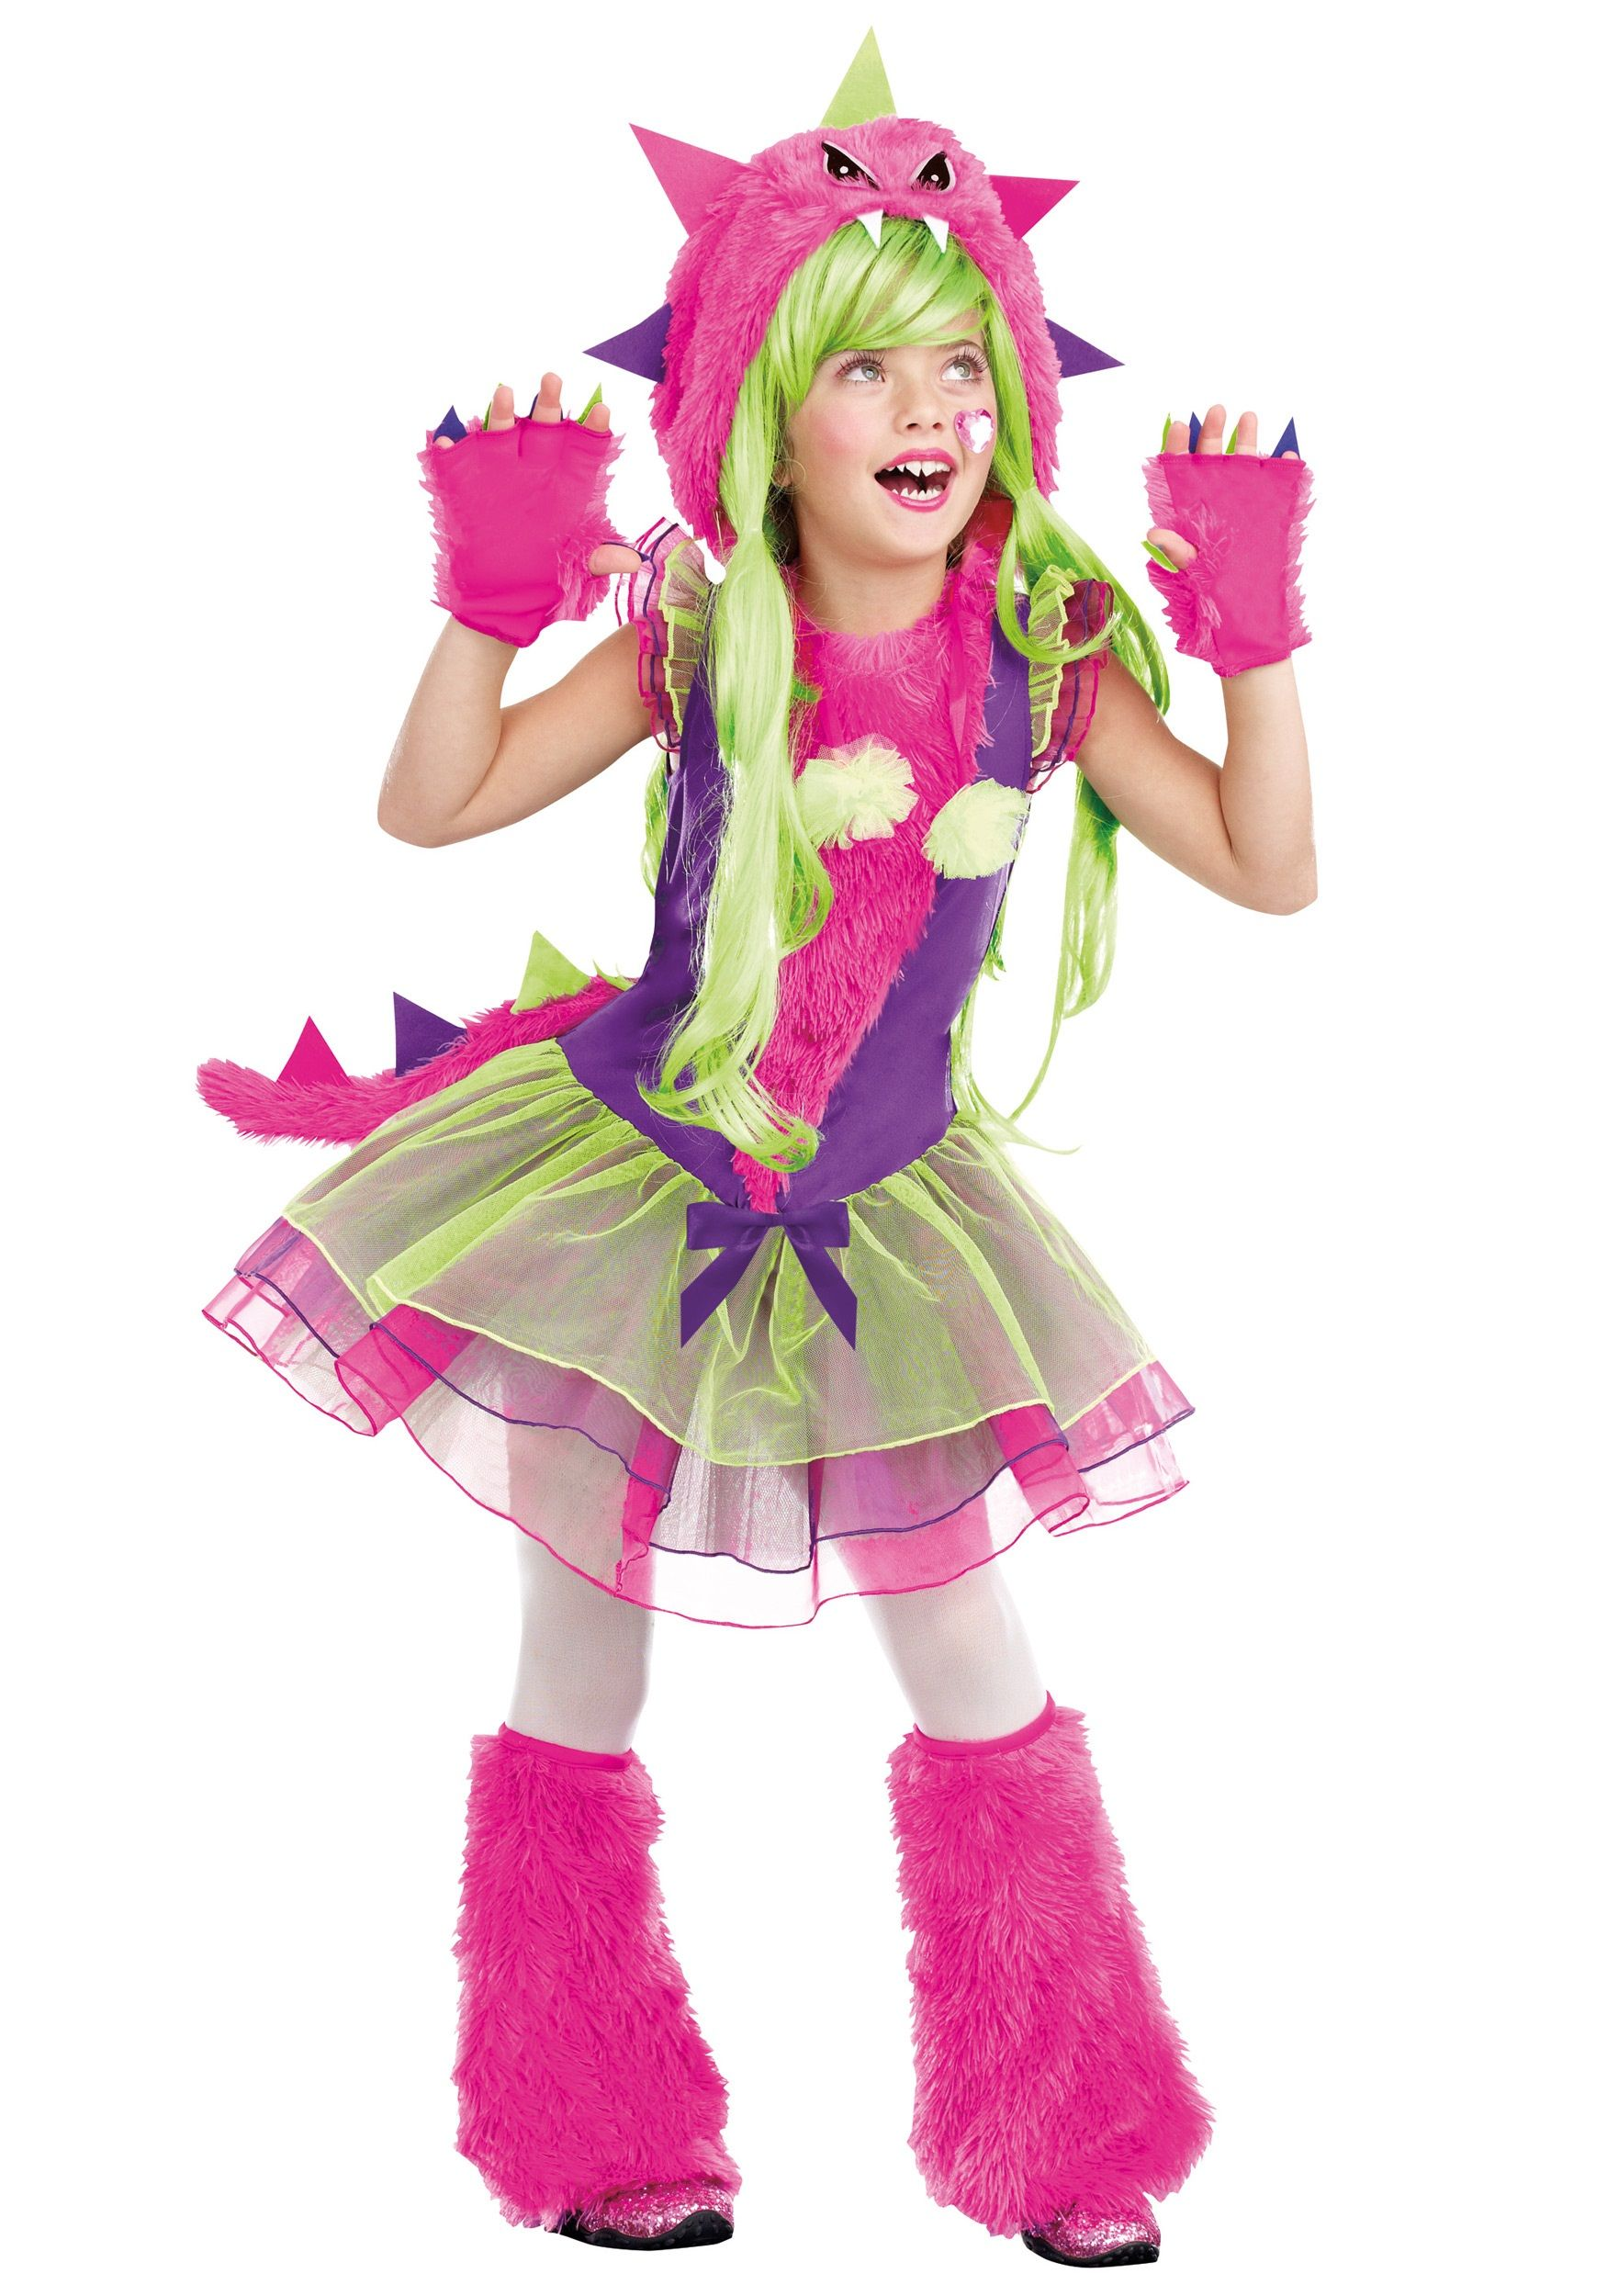 Kids Fur-ocious Lil Creature Costume | More Costumes and Monster ...